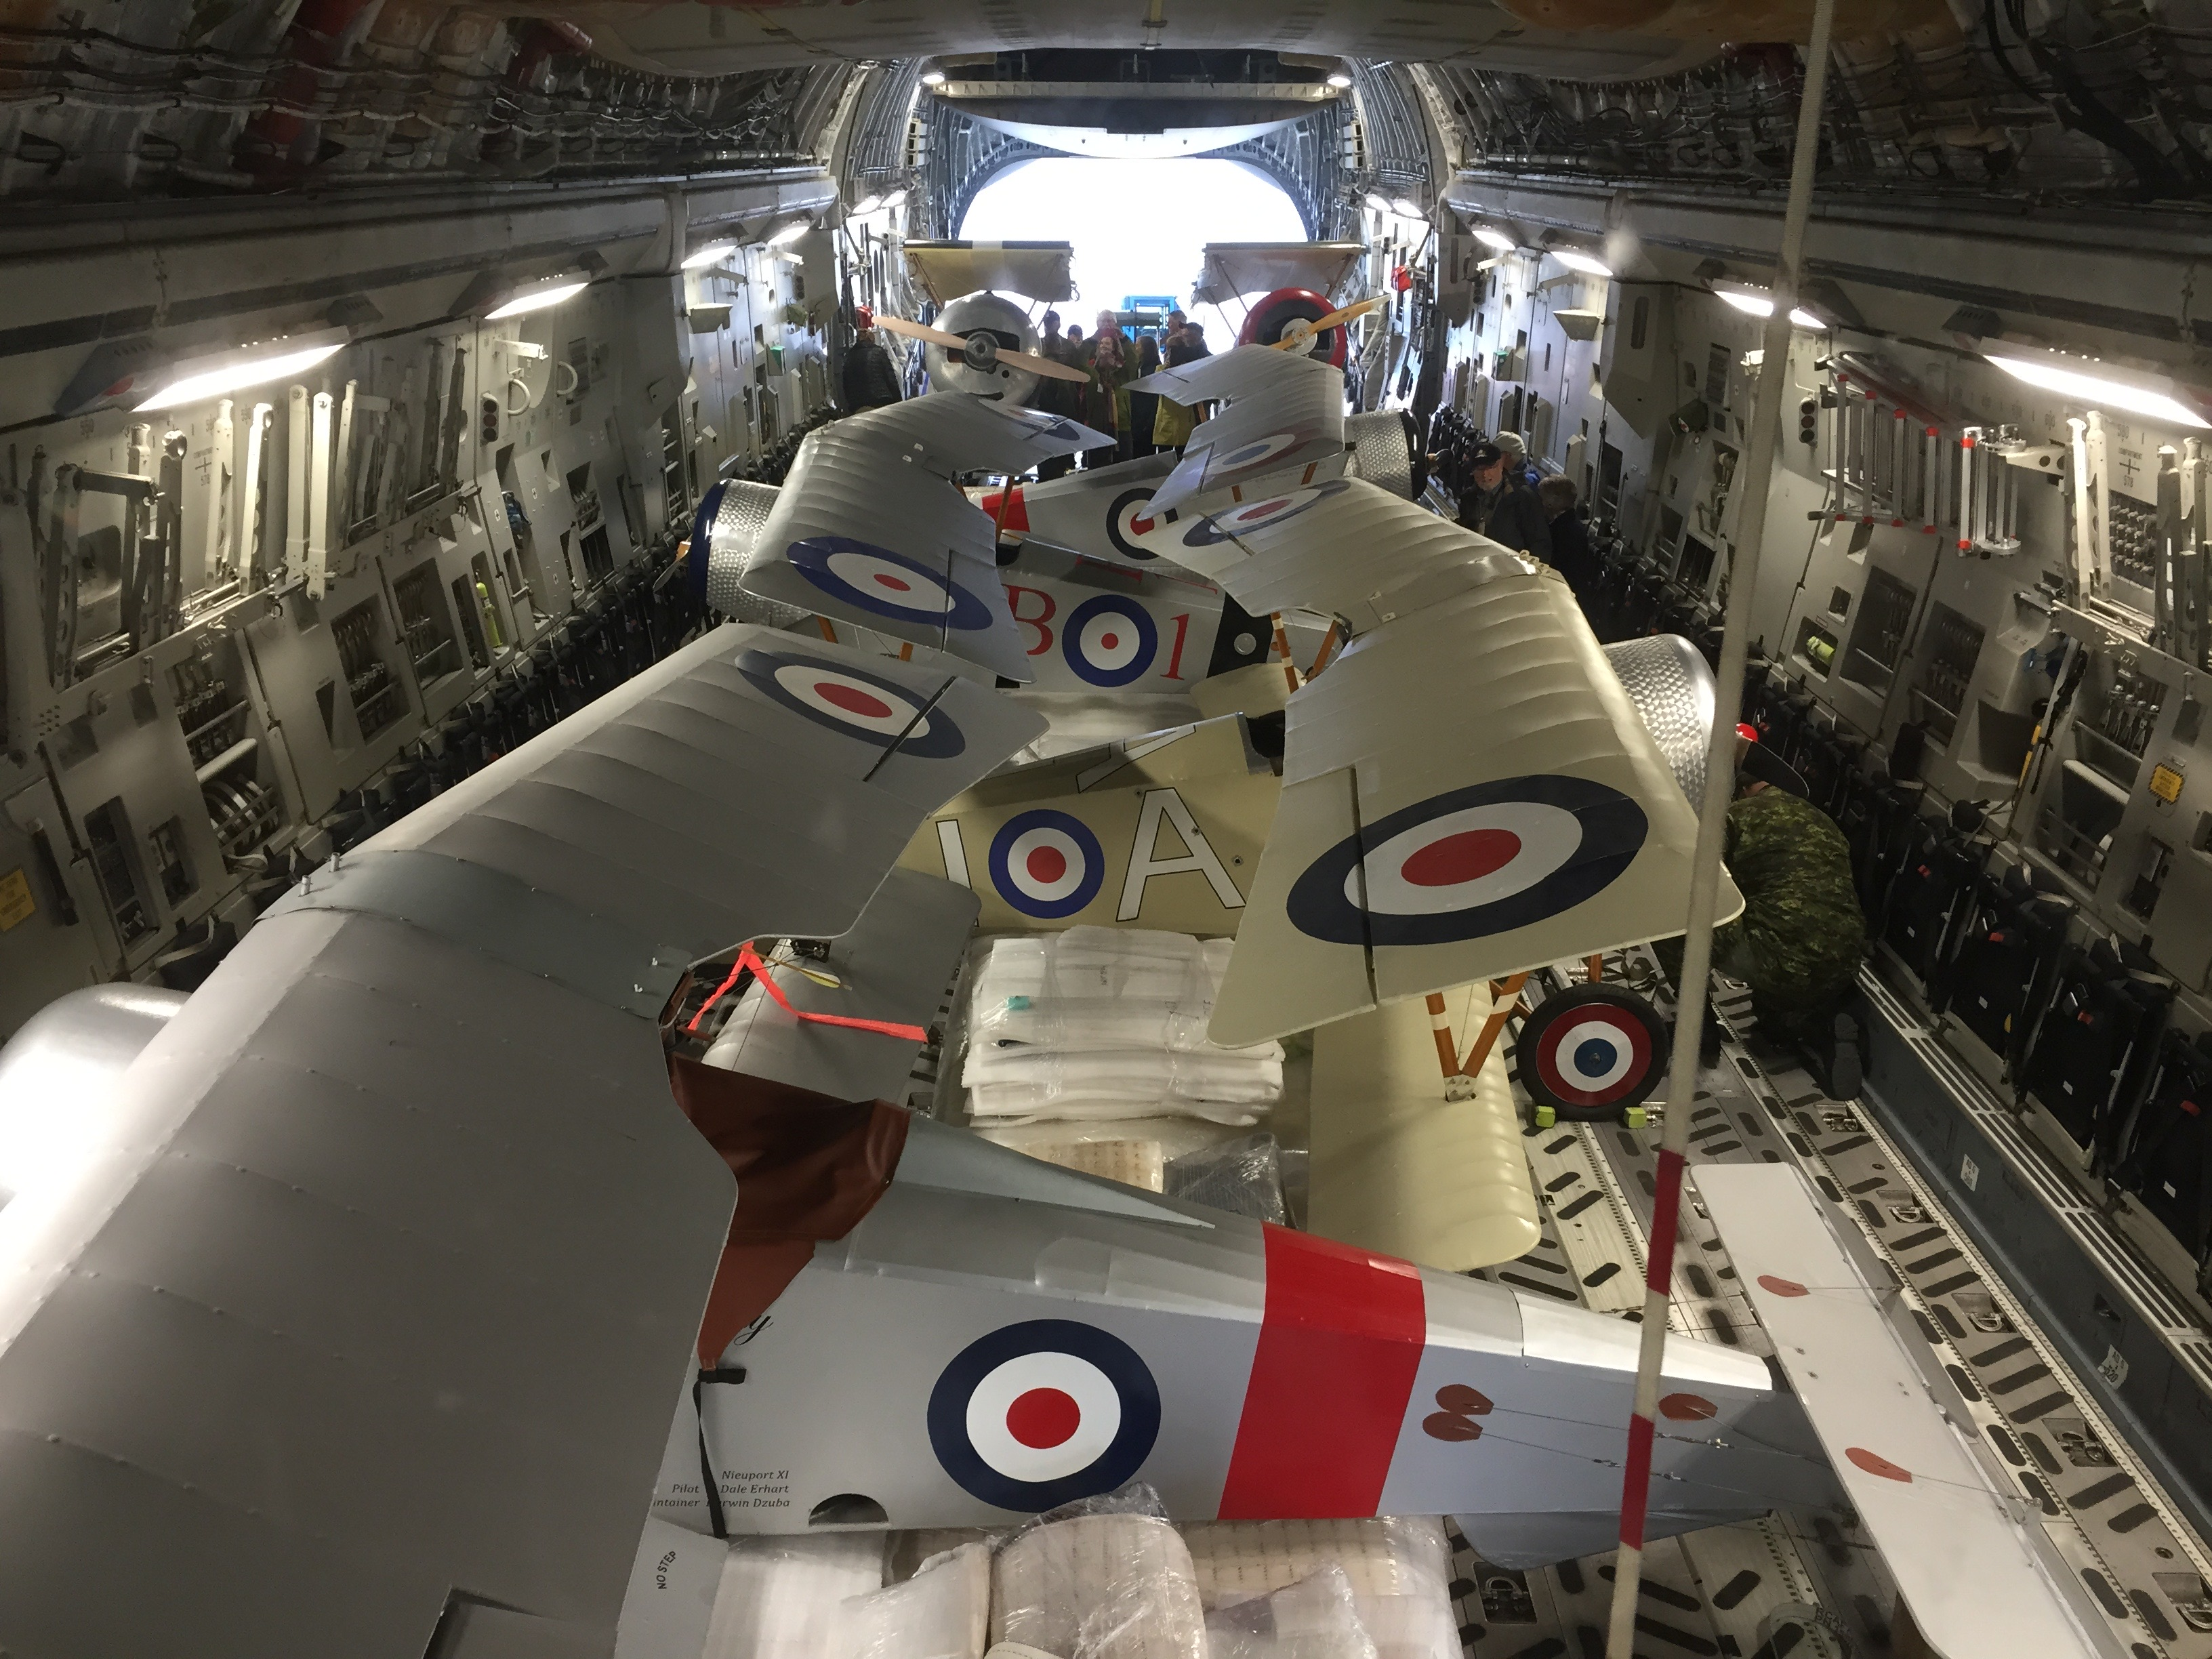 It's like a jigsaw puzzle! The Vimy Flight Association's aircraft are safely stowed in the CC-177 Globemaster III. PHOTO: Major Holly-Anne Brown